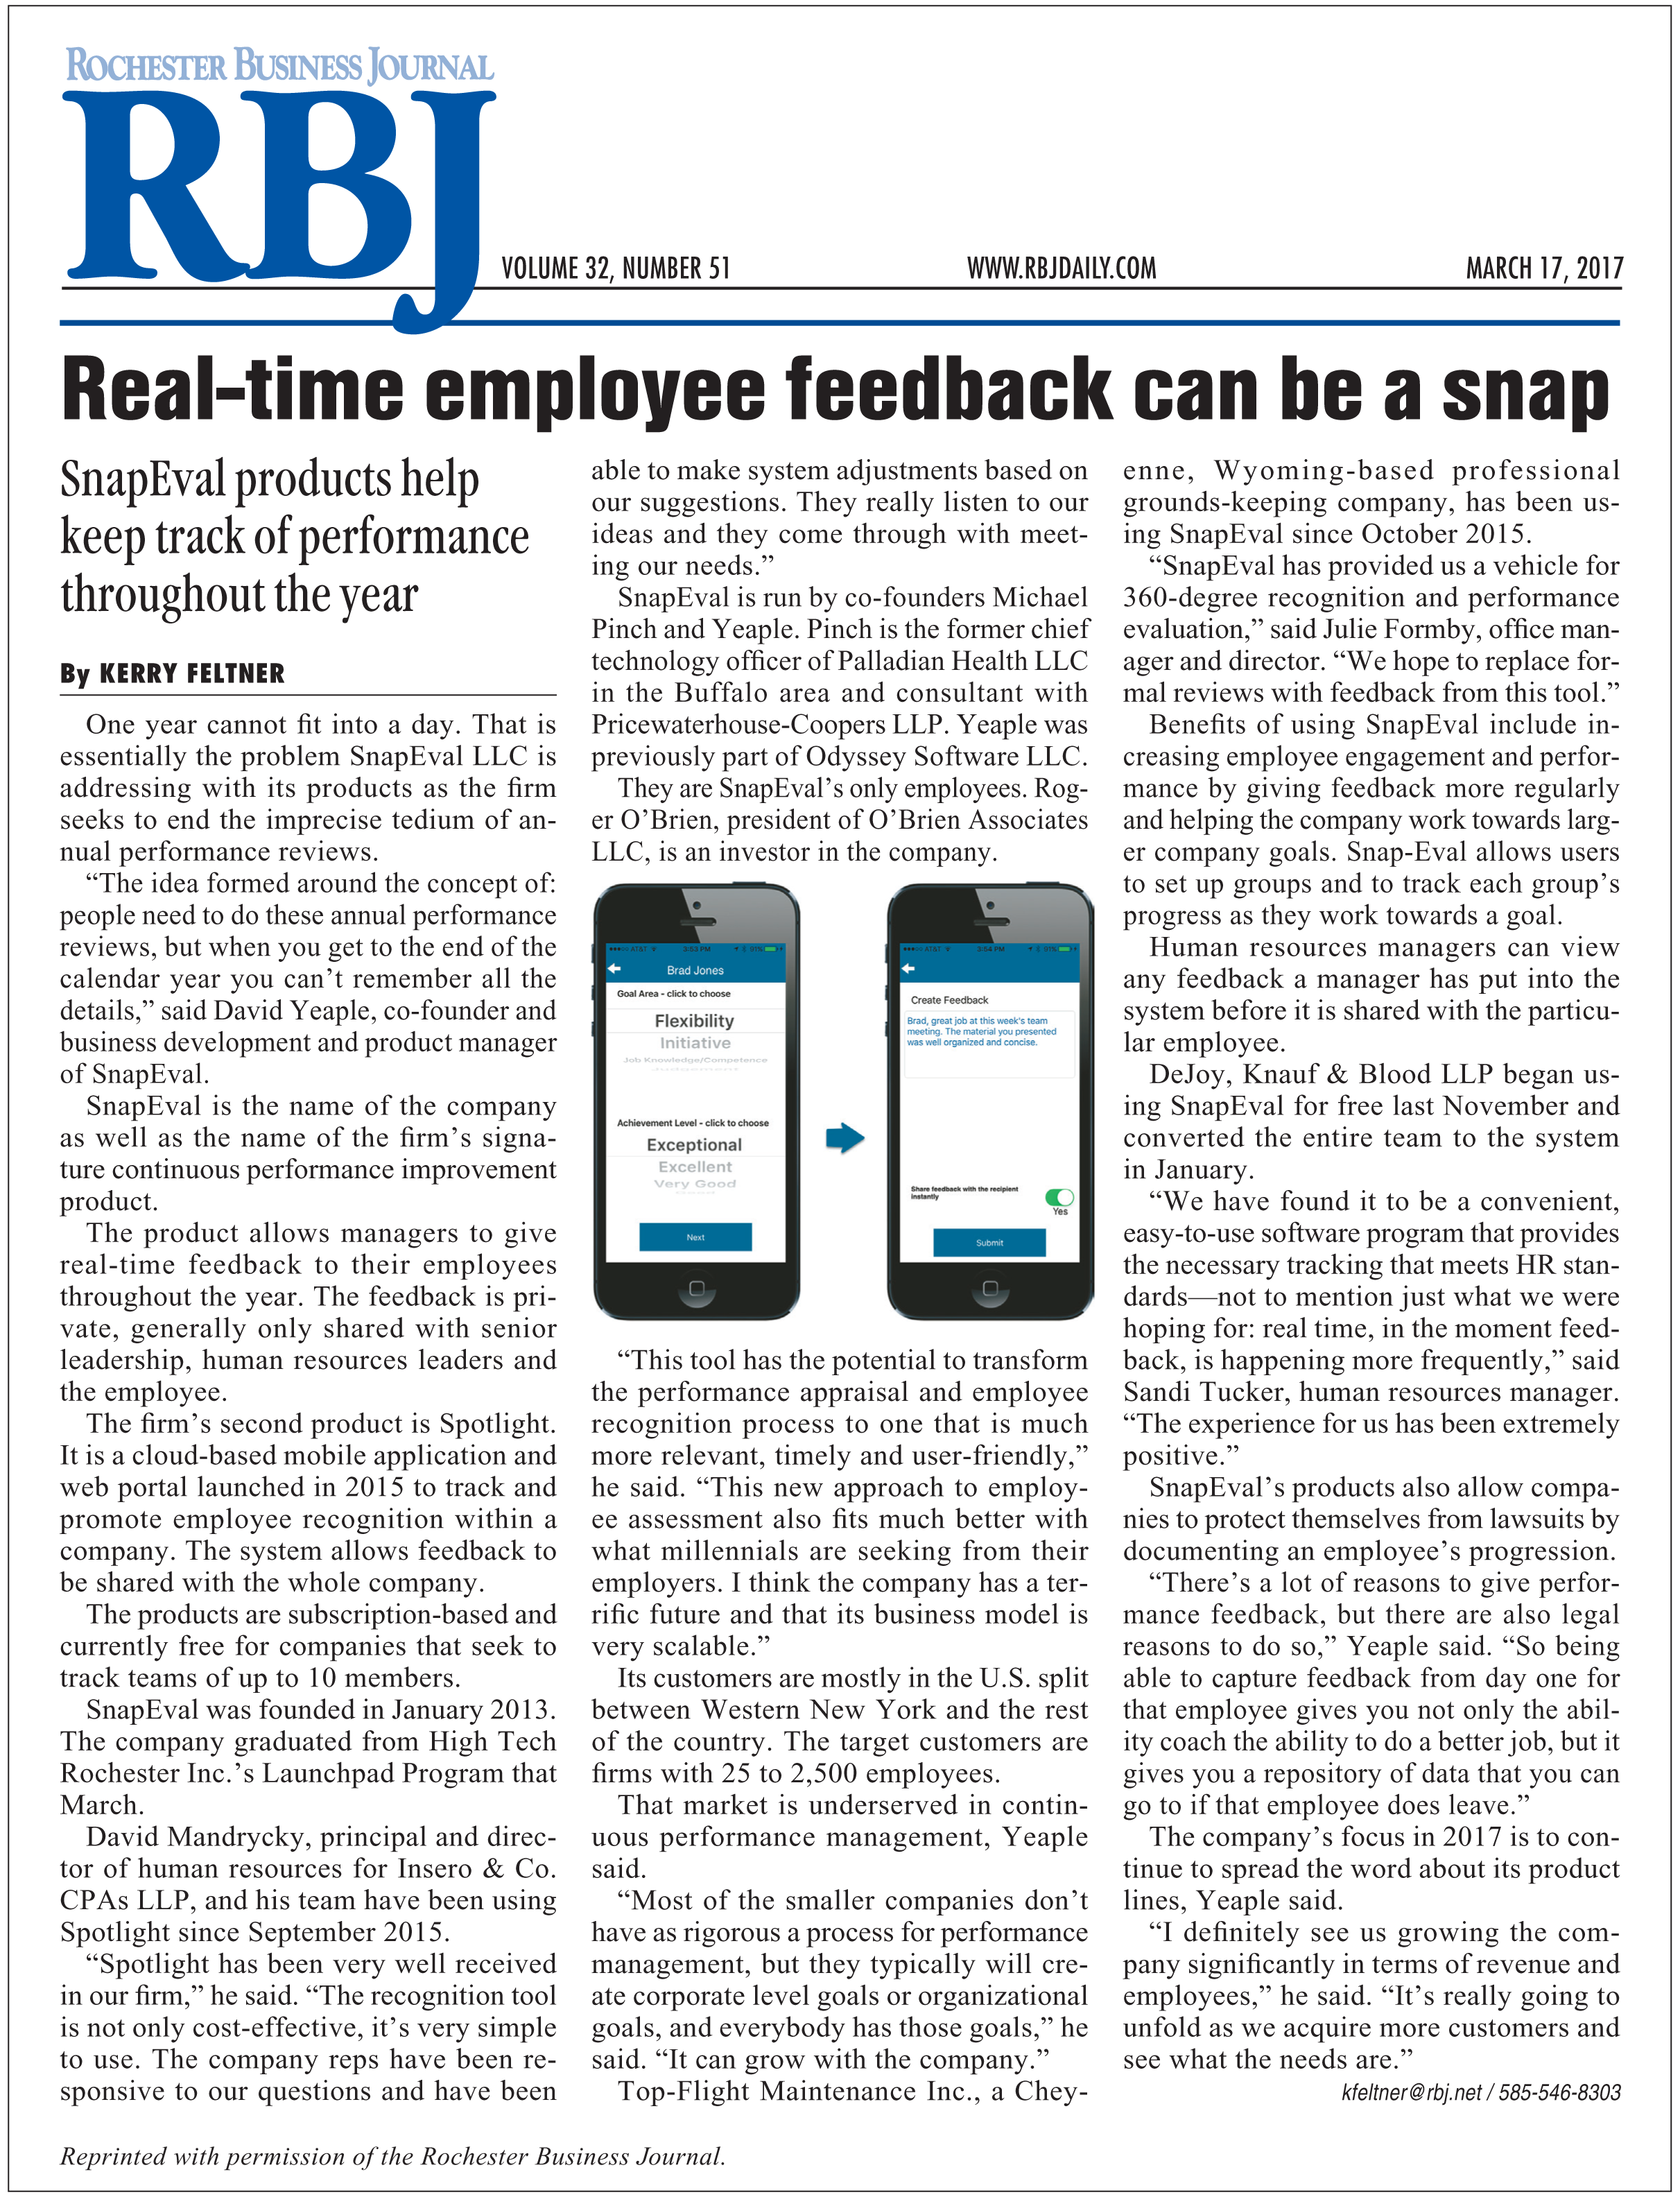 Rochester Business Journal Article: Real-time employee feedback can be a snap